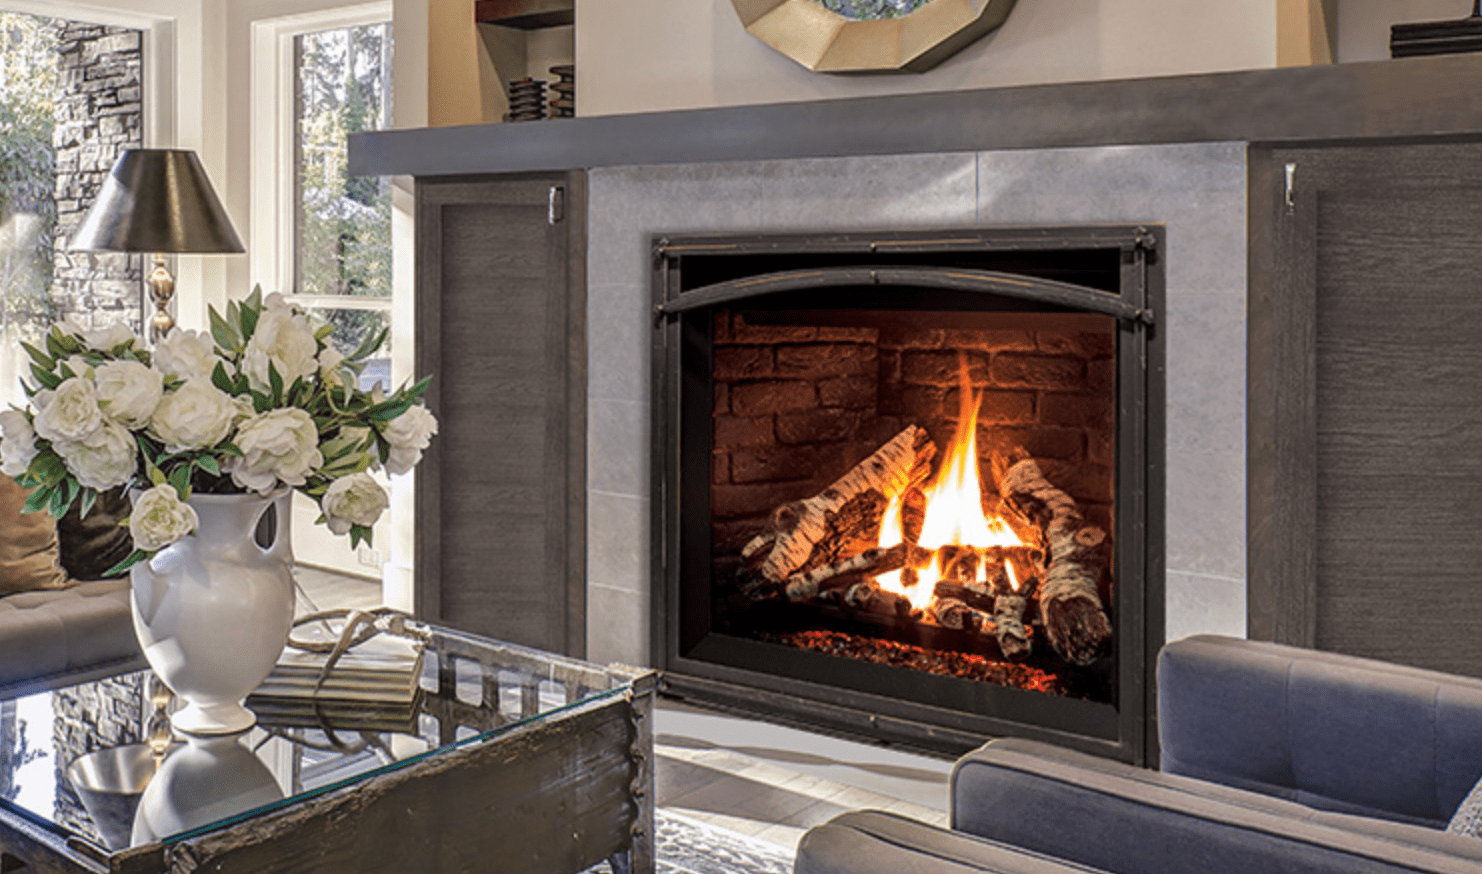 Propane Fireplace Installation Enviro G42 Natural Gas Or Propane Fireplacefriendly Fires